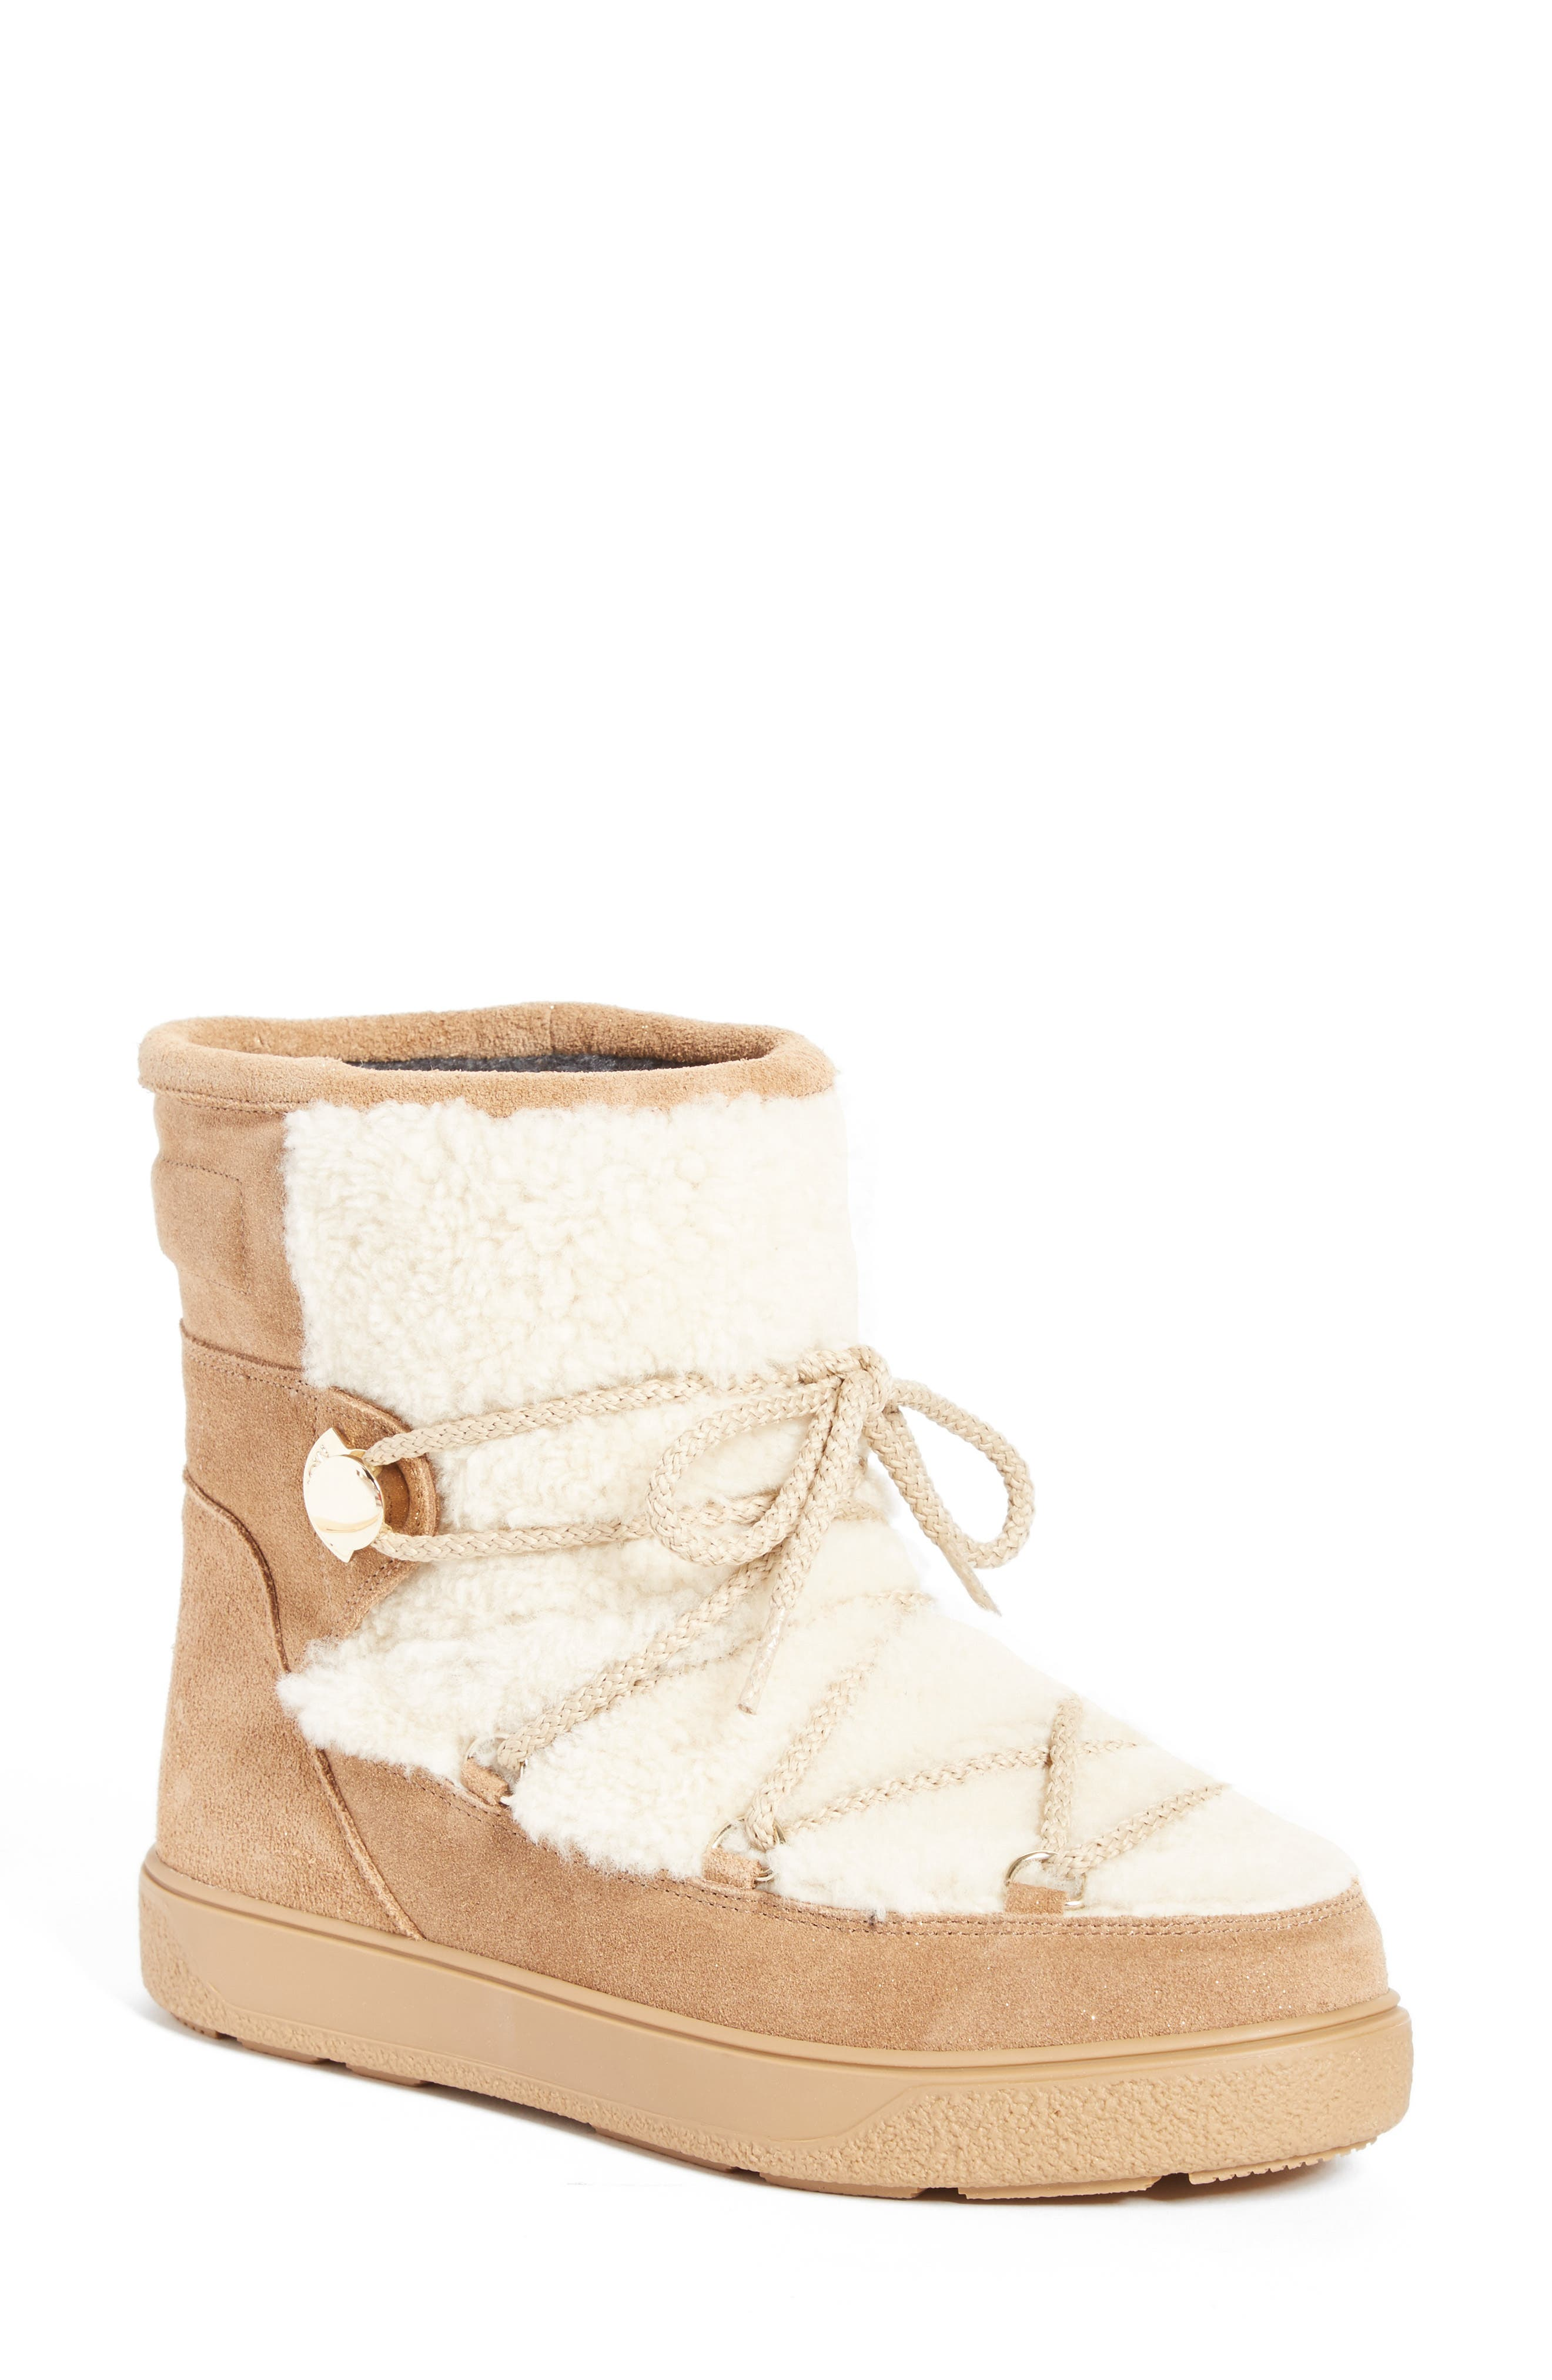 New Fanny Stivale Genuine Shearling Short Moon Boots,                             Main thumbnail 1, color,